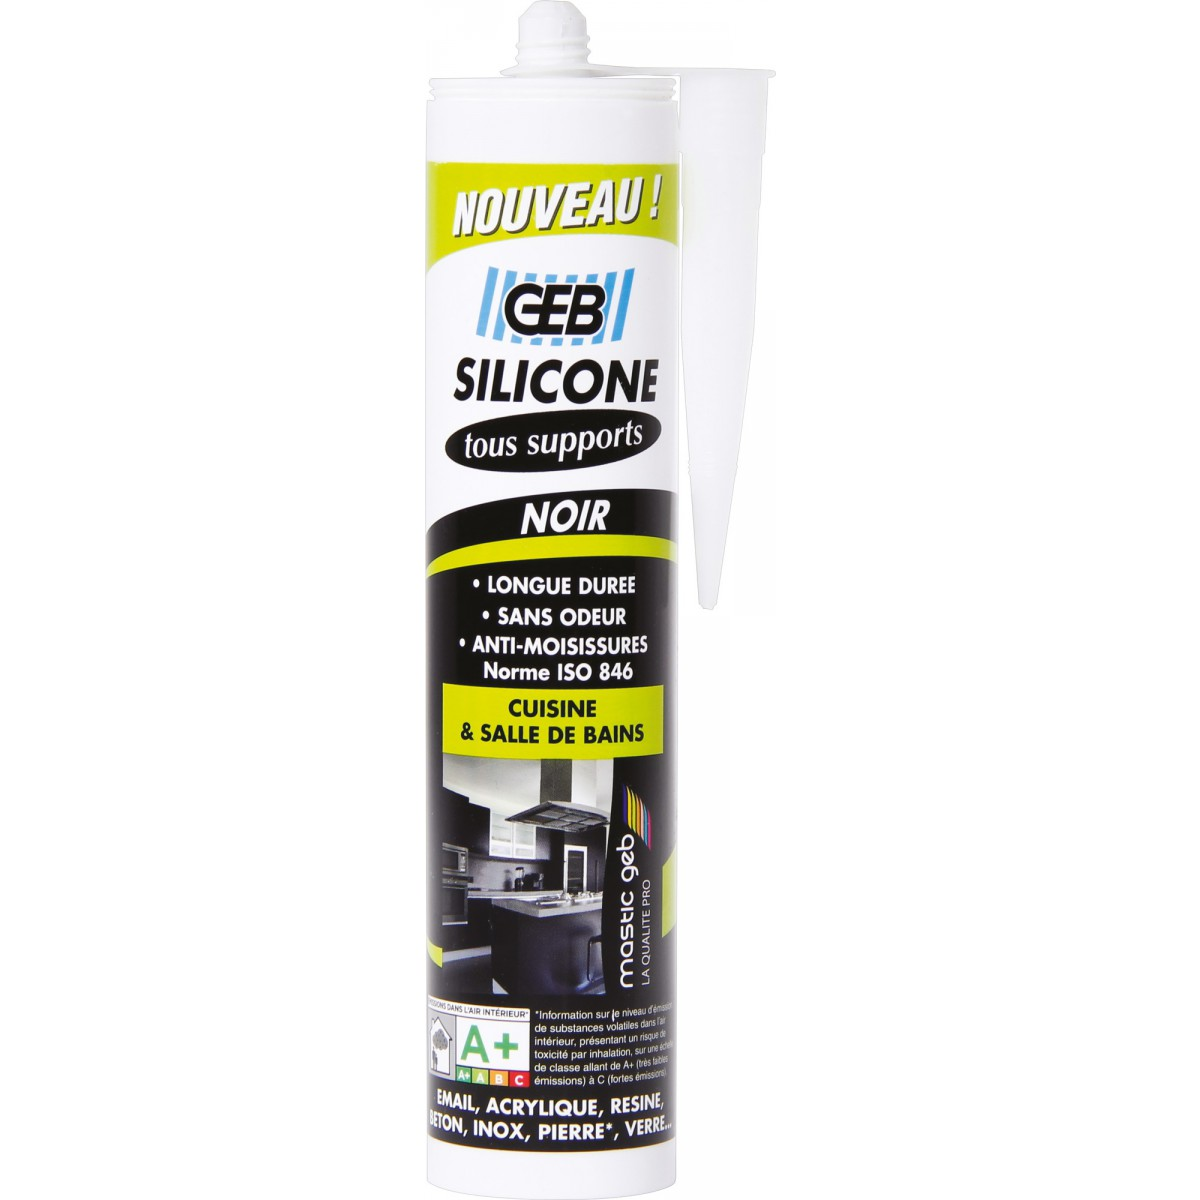 Silicone tous supports Geb - Noir